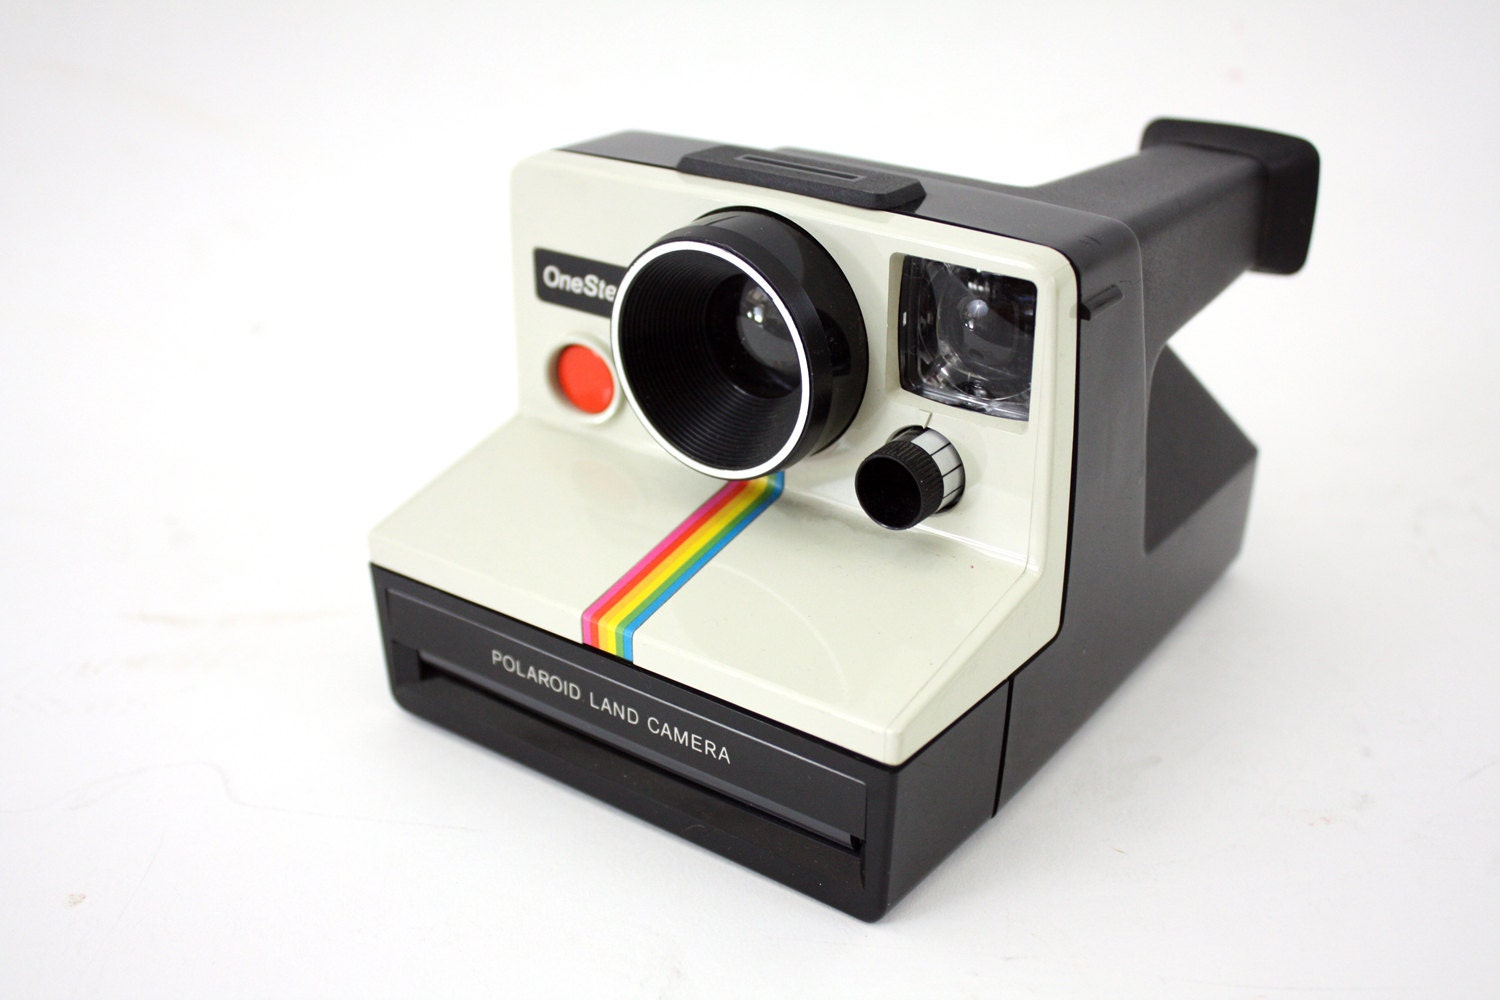 Vintage Polaroid Camera // Collectible One Step Land by weareMFEO: www.etsy.com/listing/116711571/vintage-polaroid-camera-collectible-one